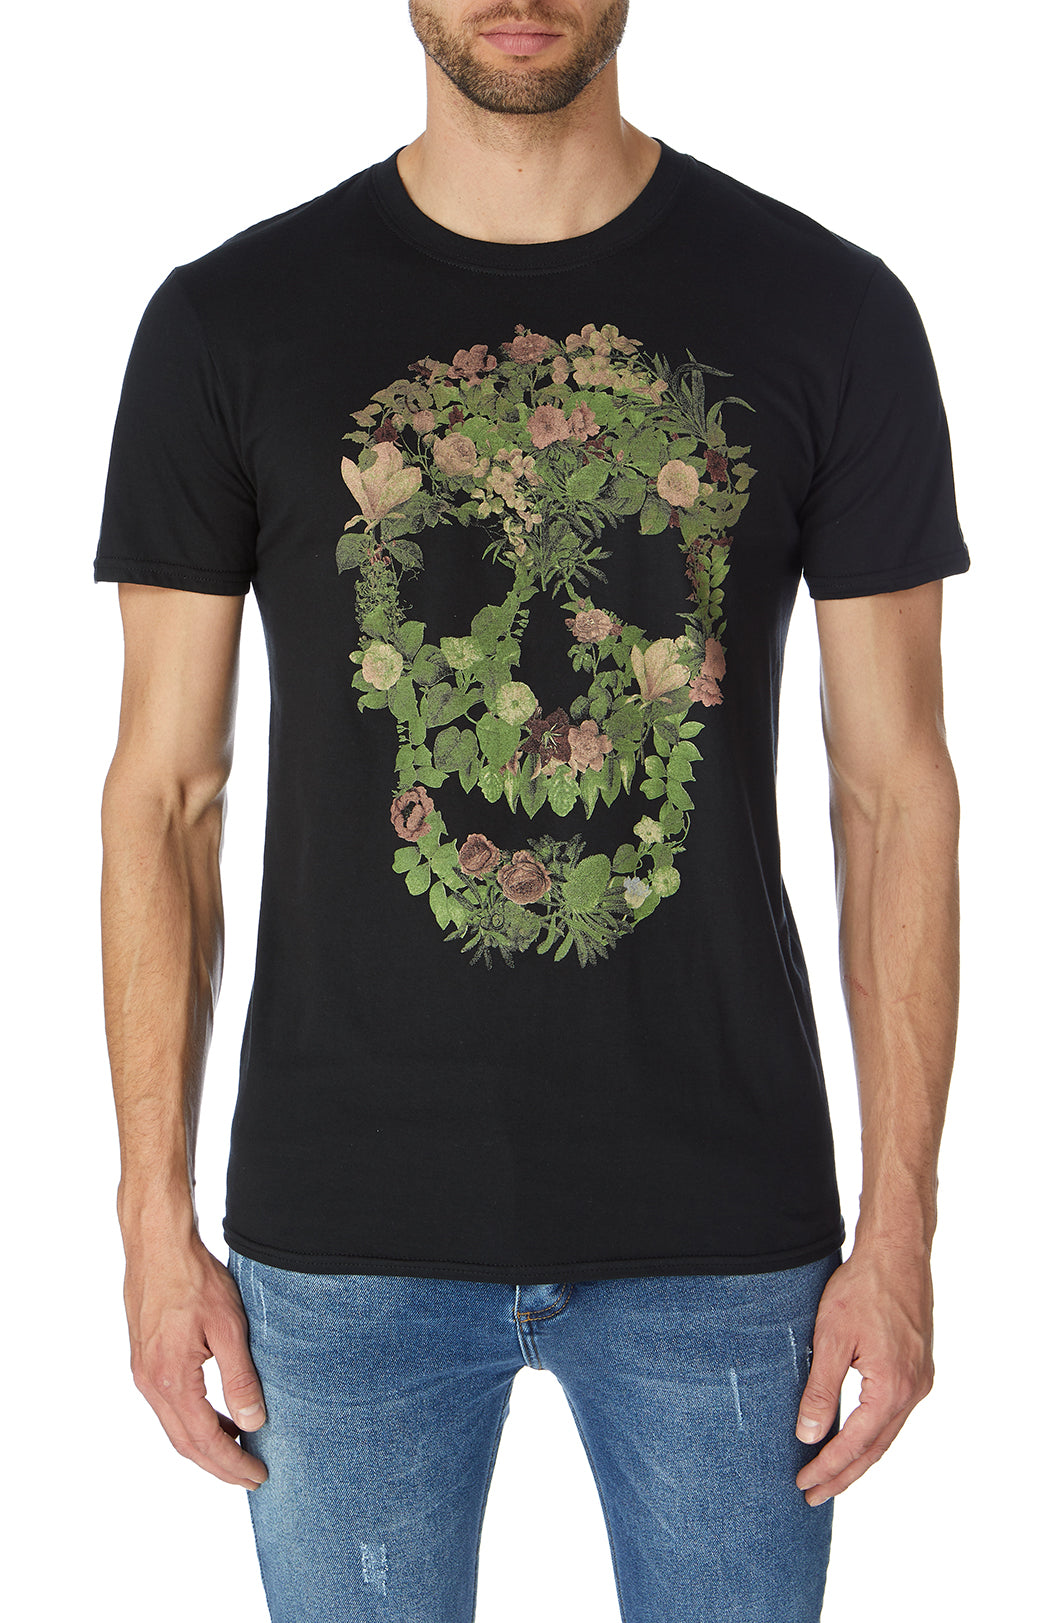 Botanical Skull T-shirt Black